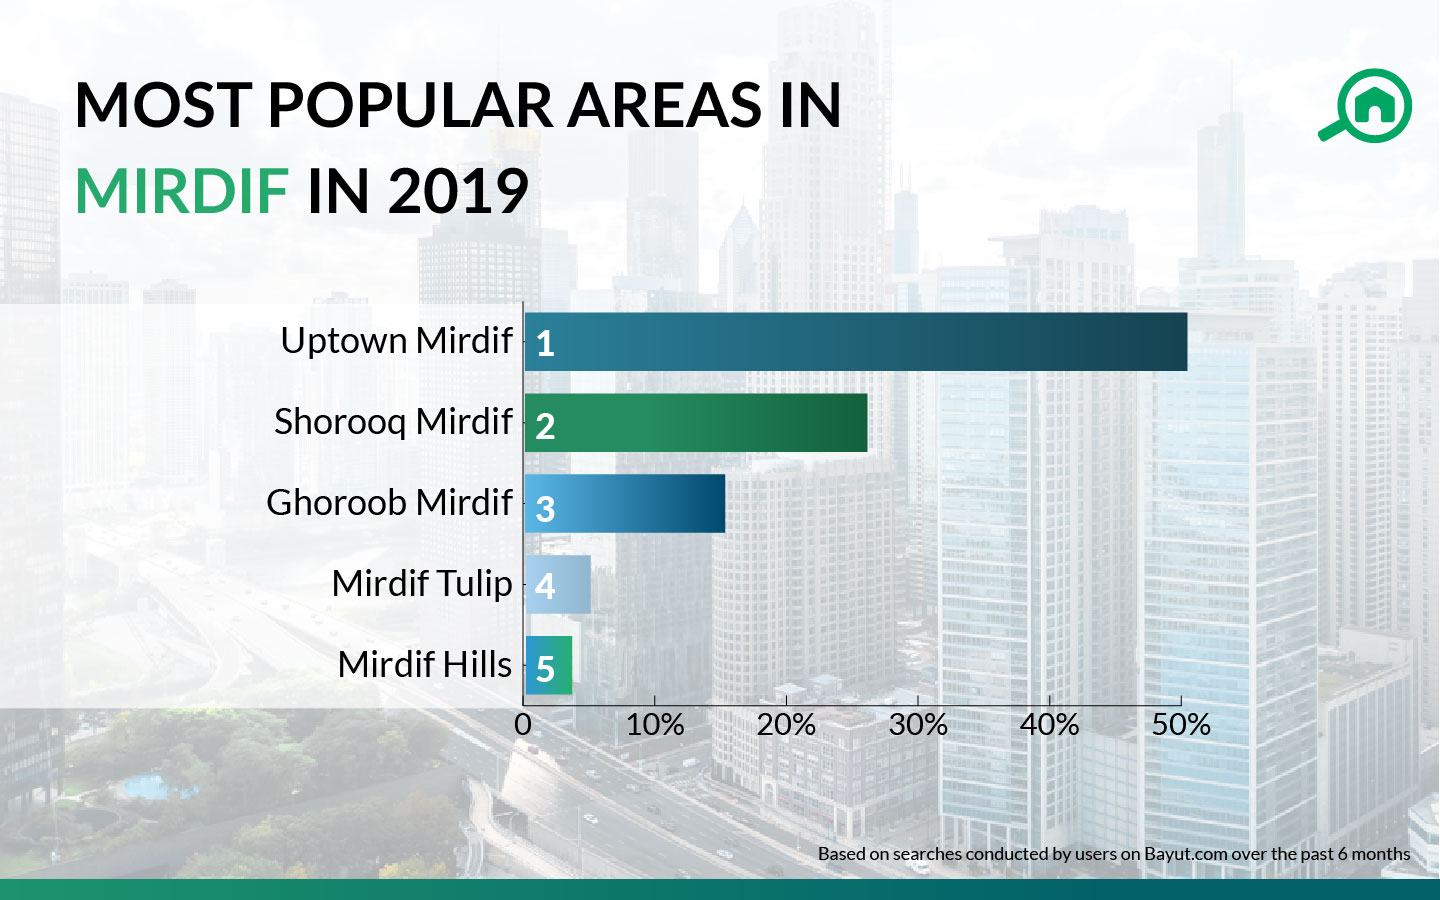 MOST POPULAR AREAS IN MIRDIF